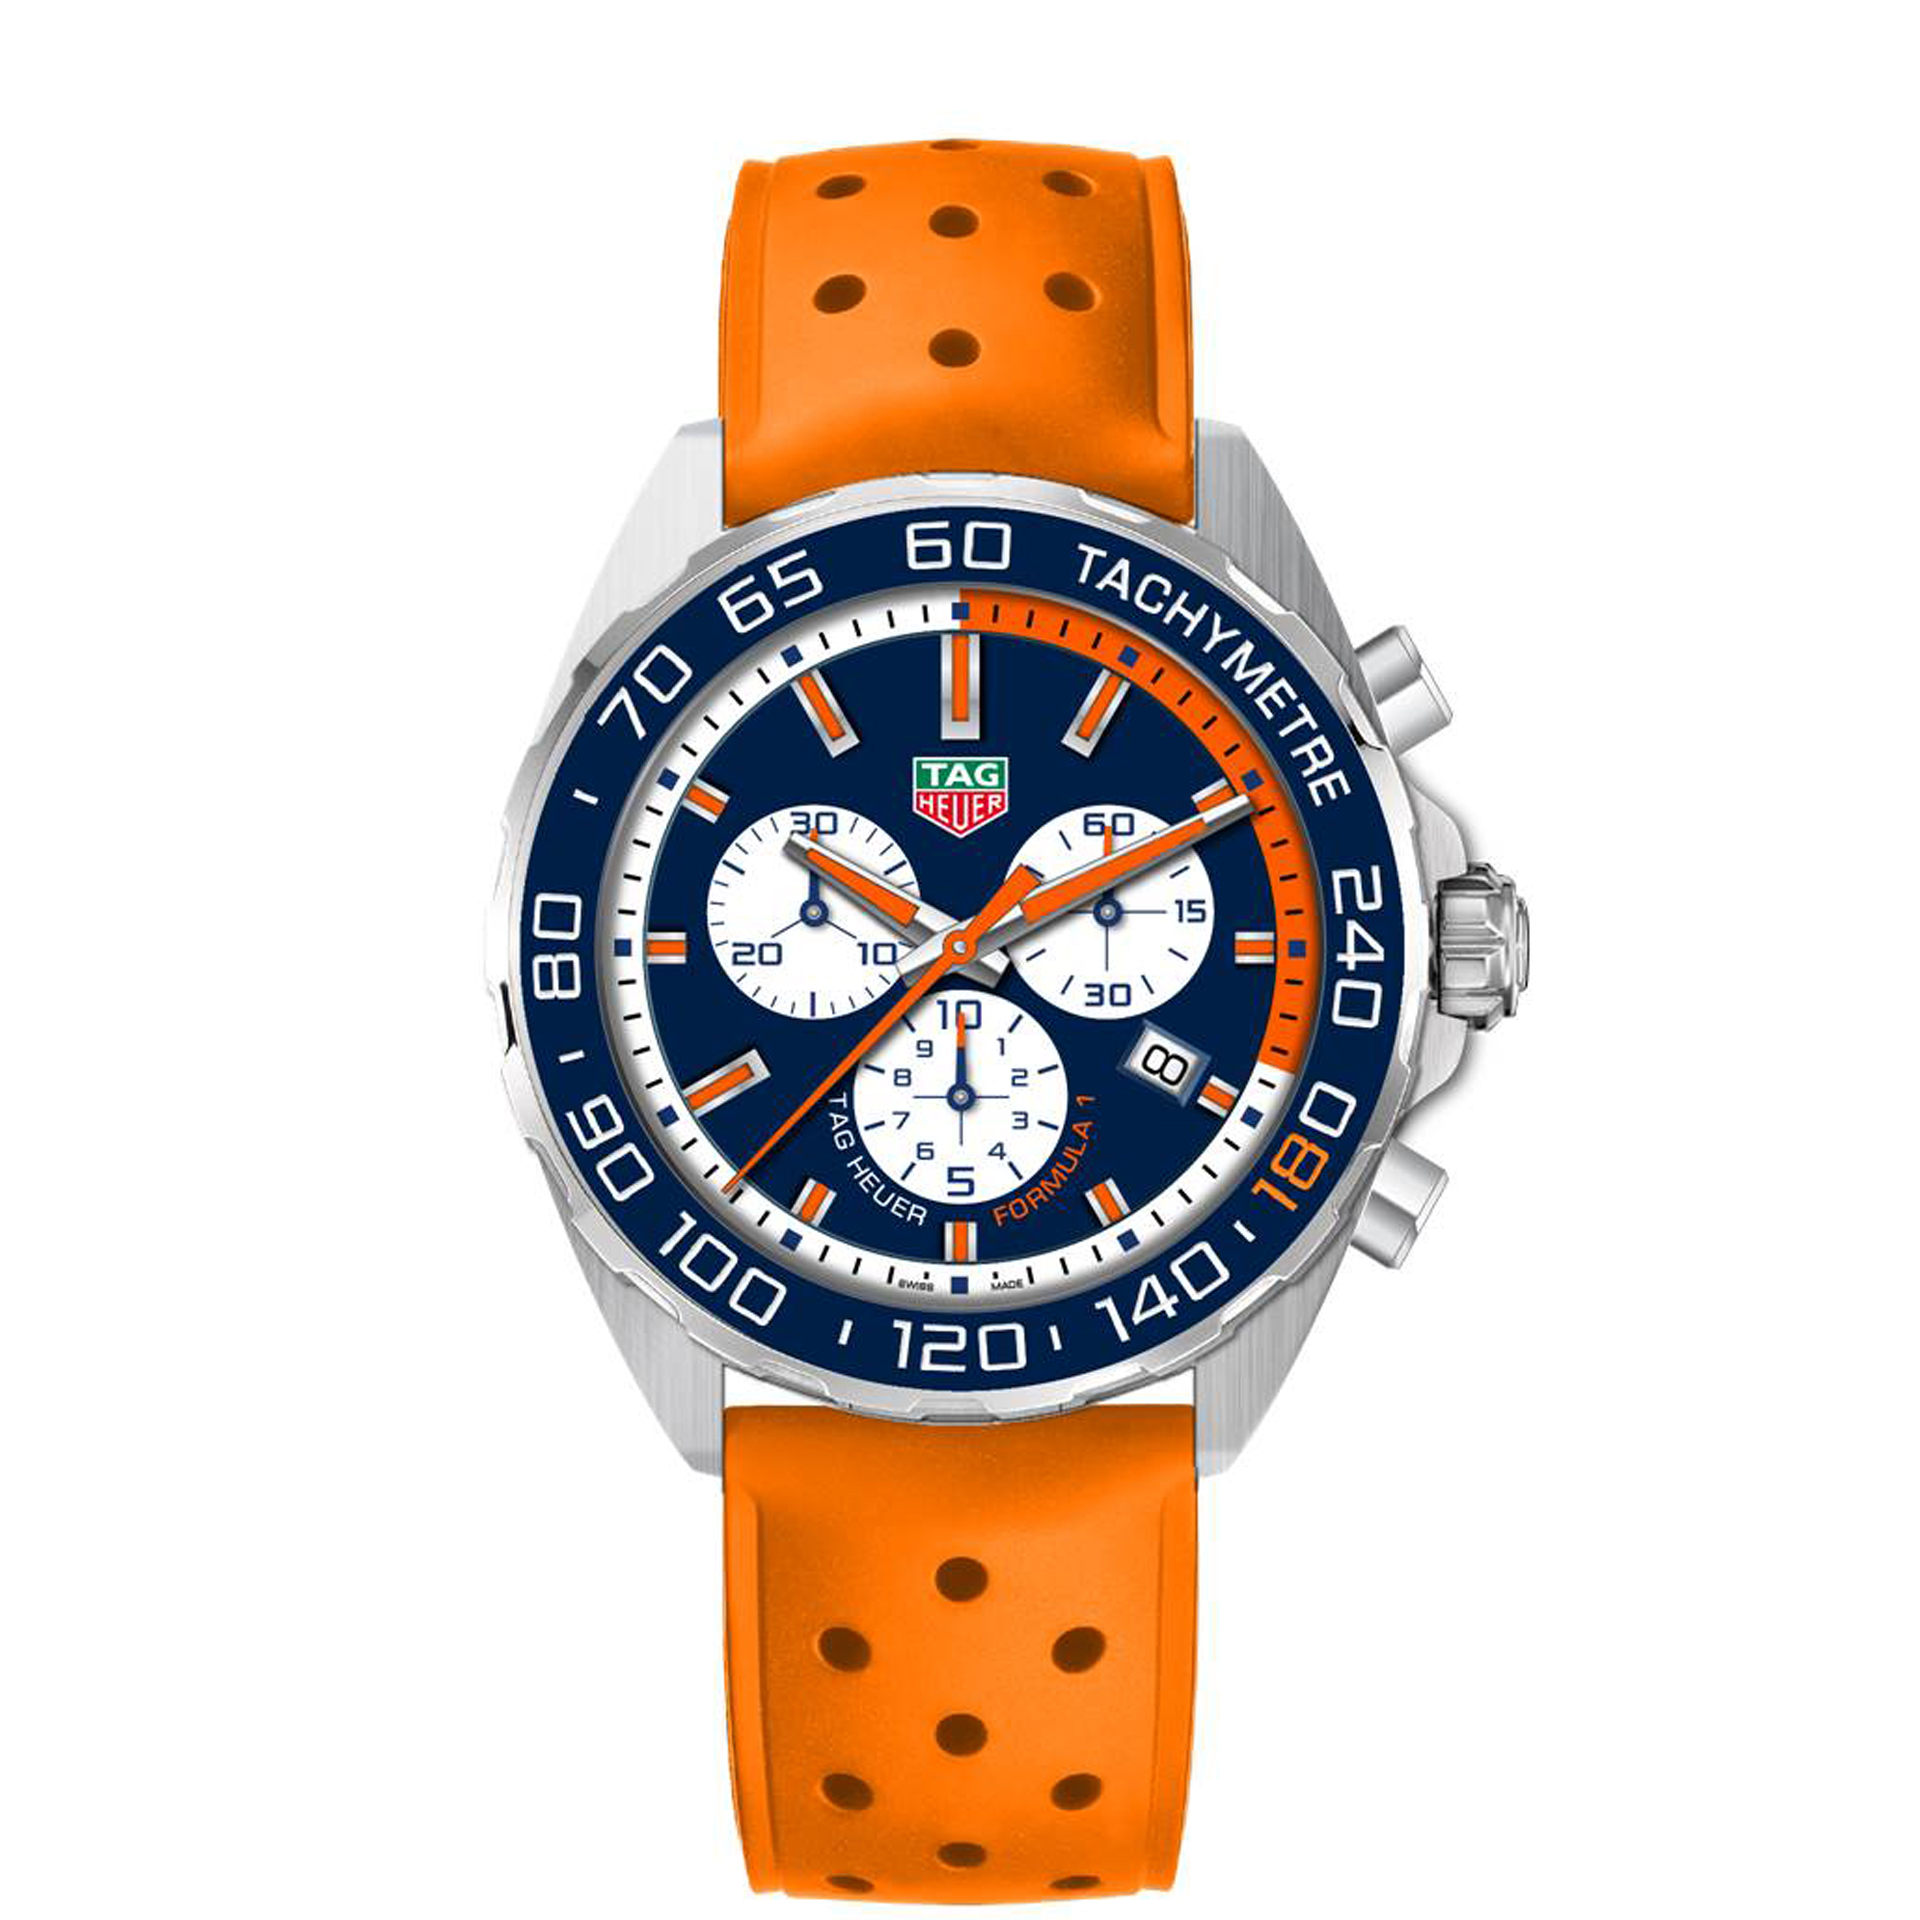 TAG Heuer Formula One Max Verstappen Youngest Grand Prix Winner Special Edition